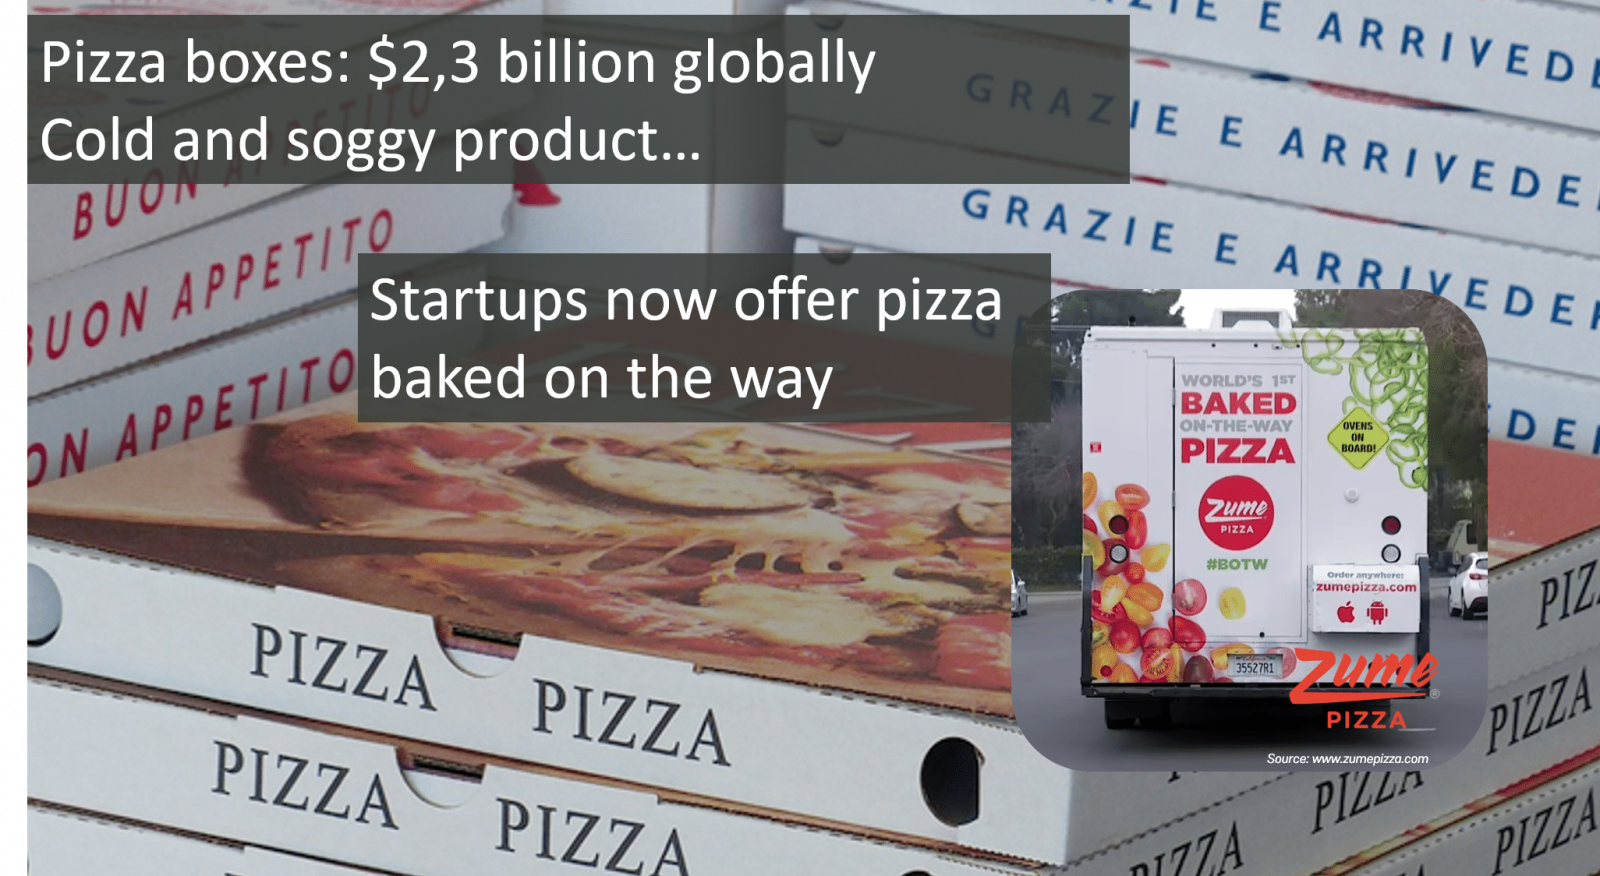 Pizza boxes packaging